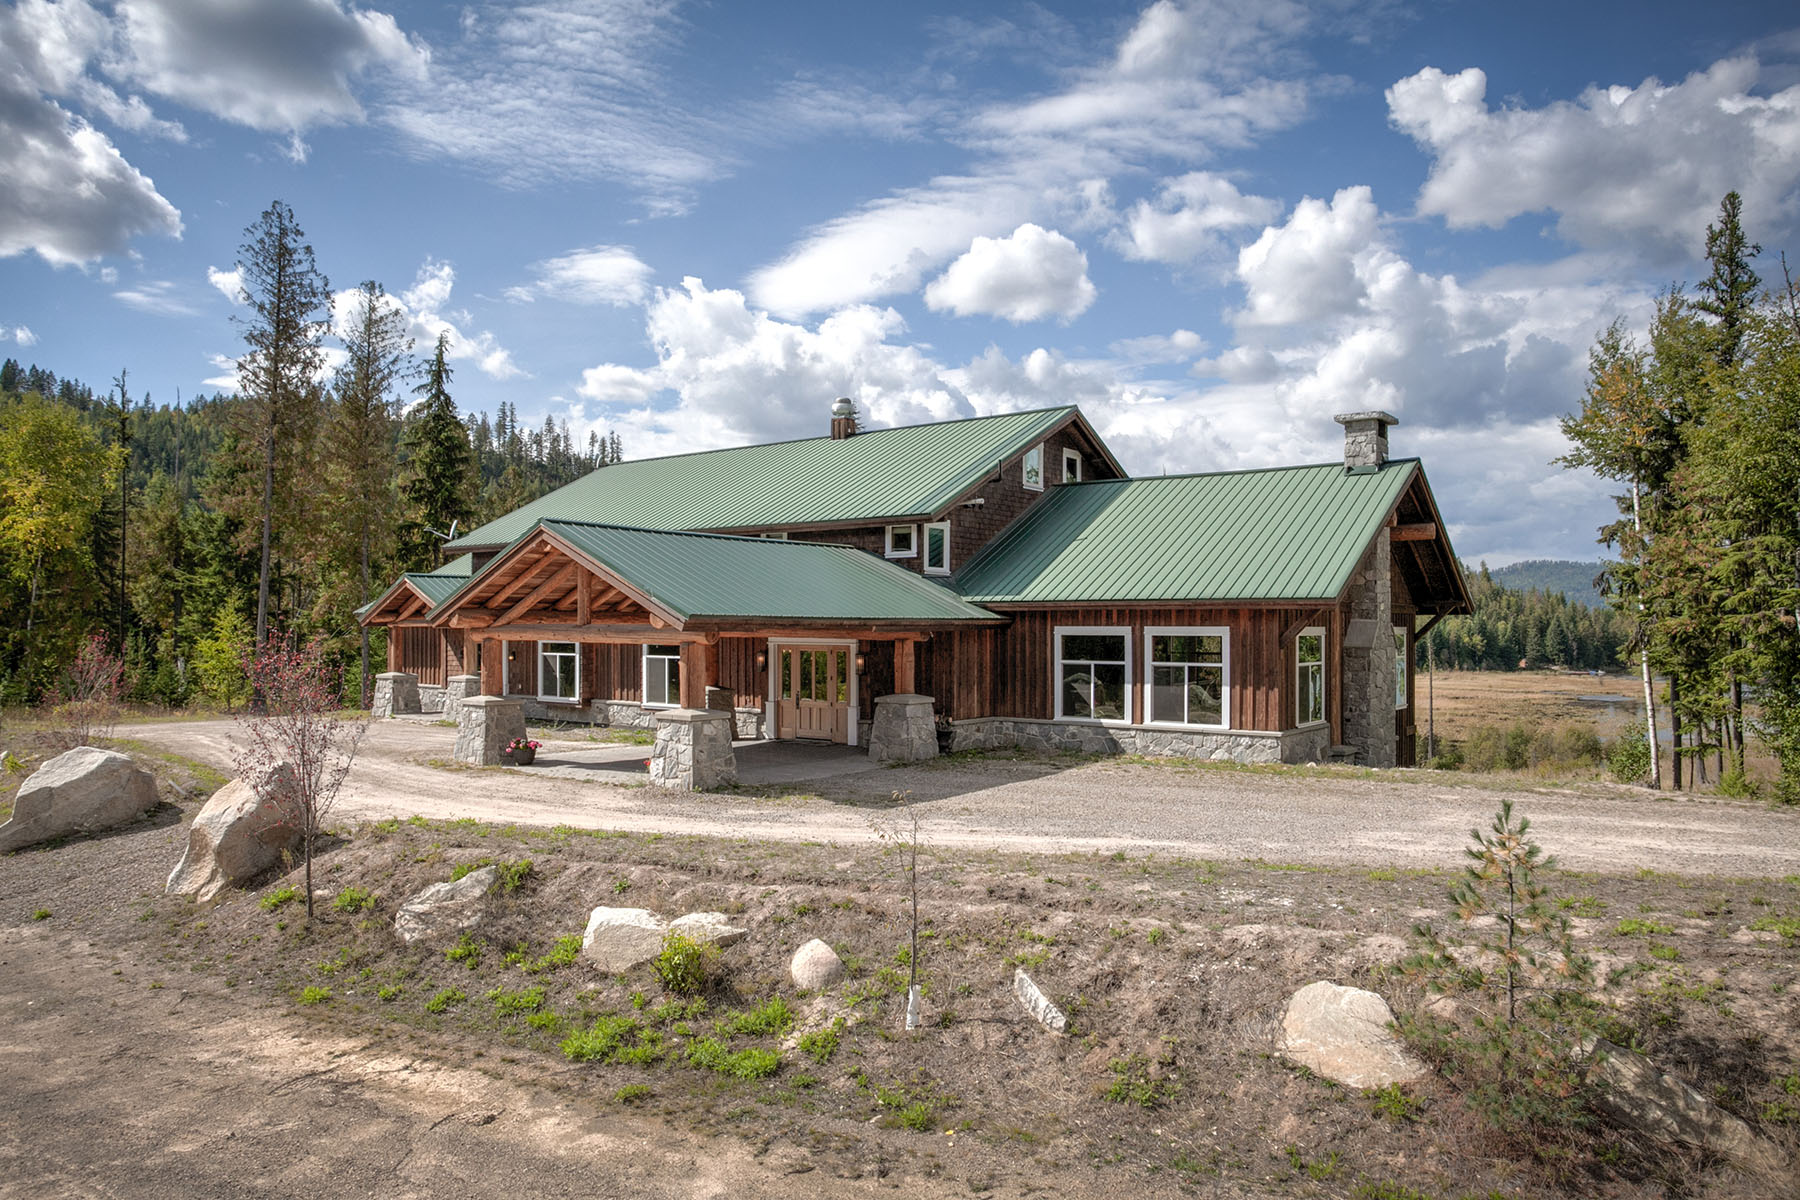 Single Family Home for Sale at Magnificent Lodge Home Estate Coolin, Idaho, 83821 United States